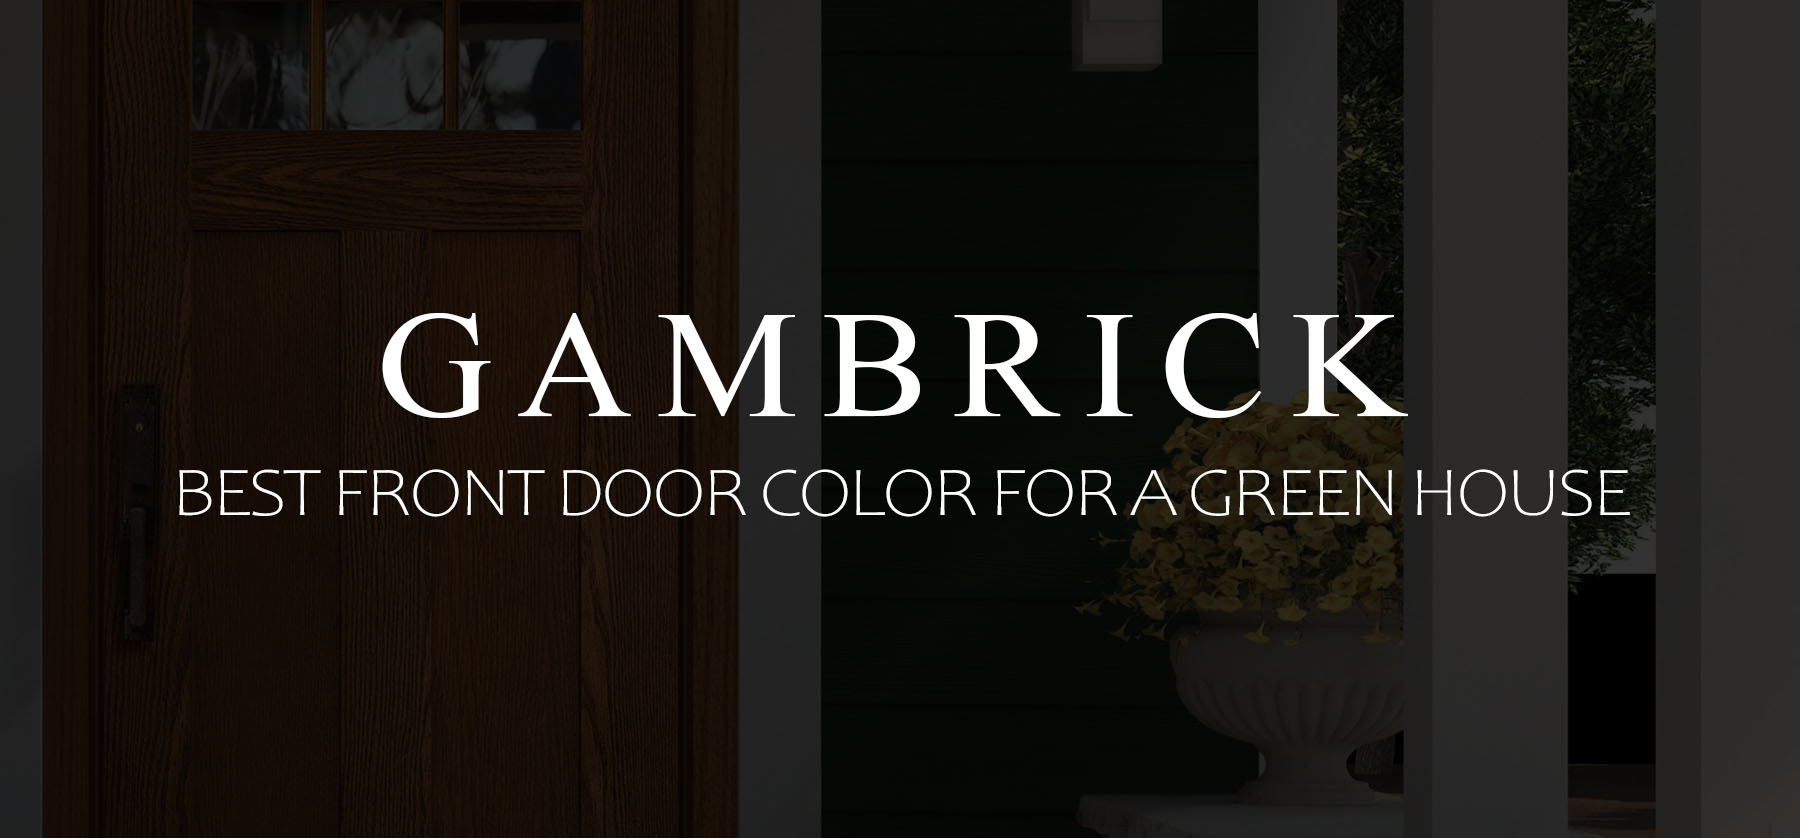 Best front door color for a green house banner 1